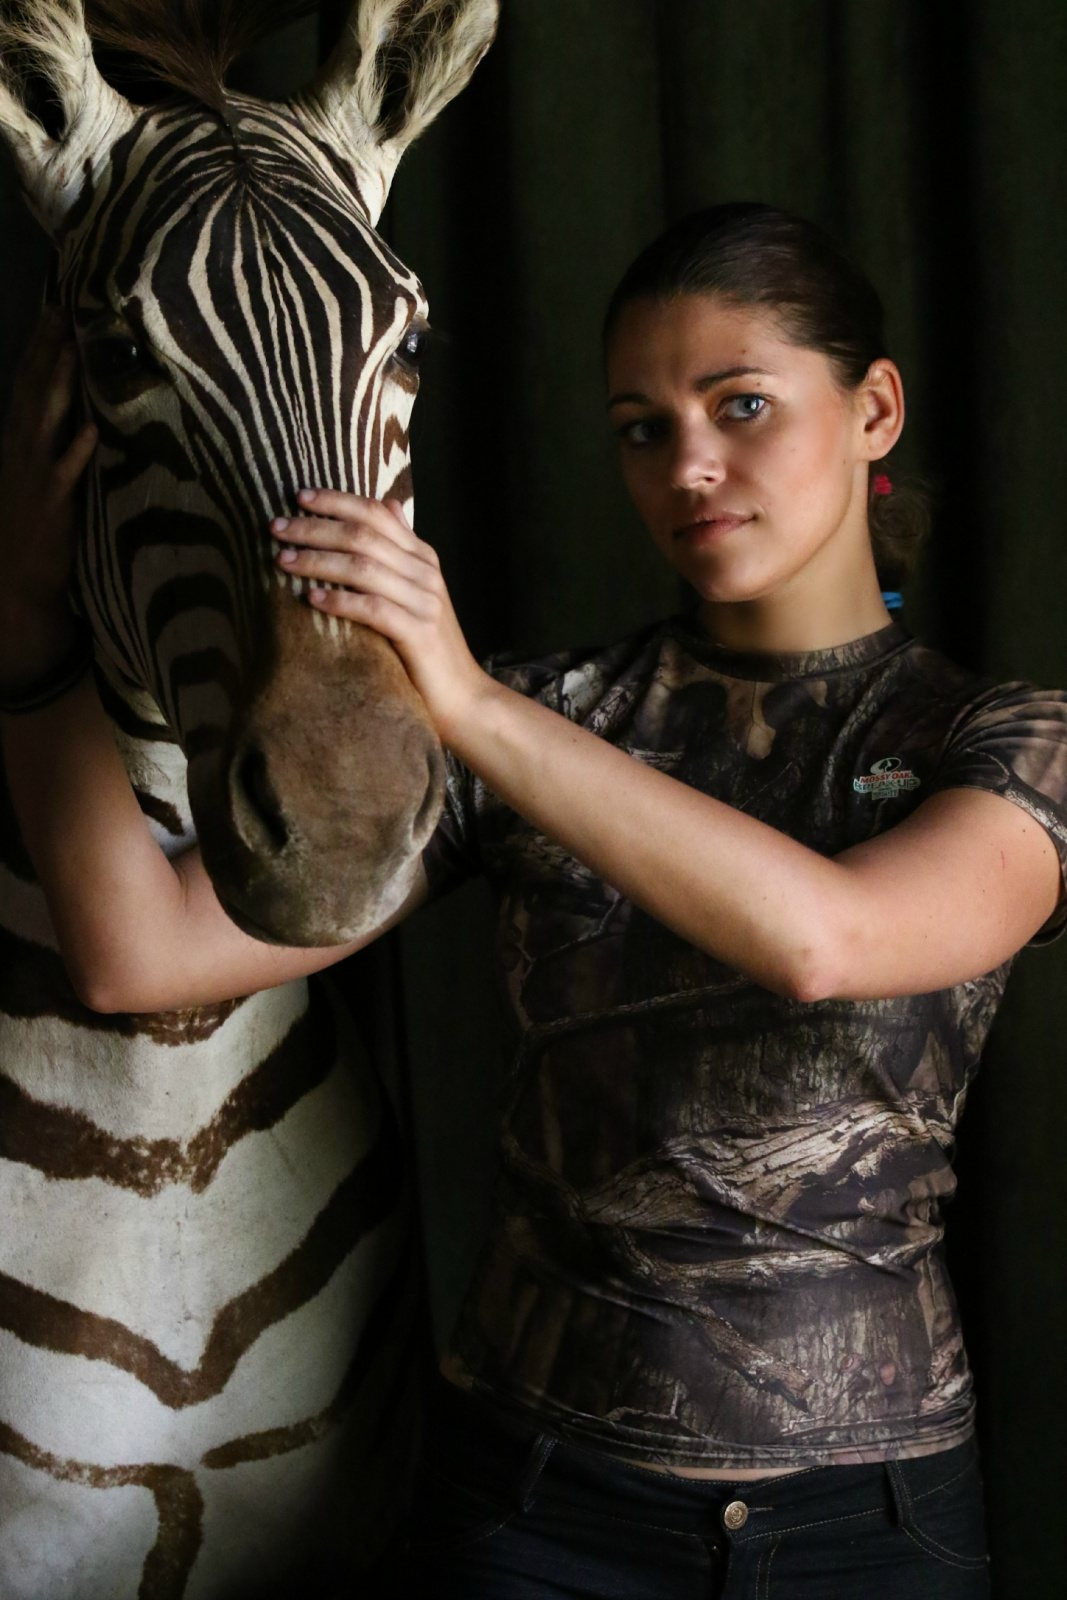 2-huntress-zebra